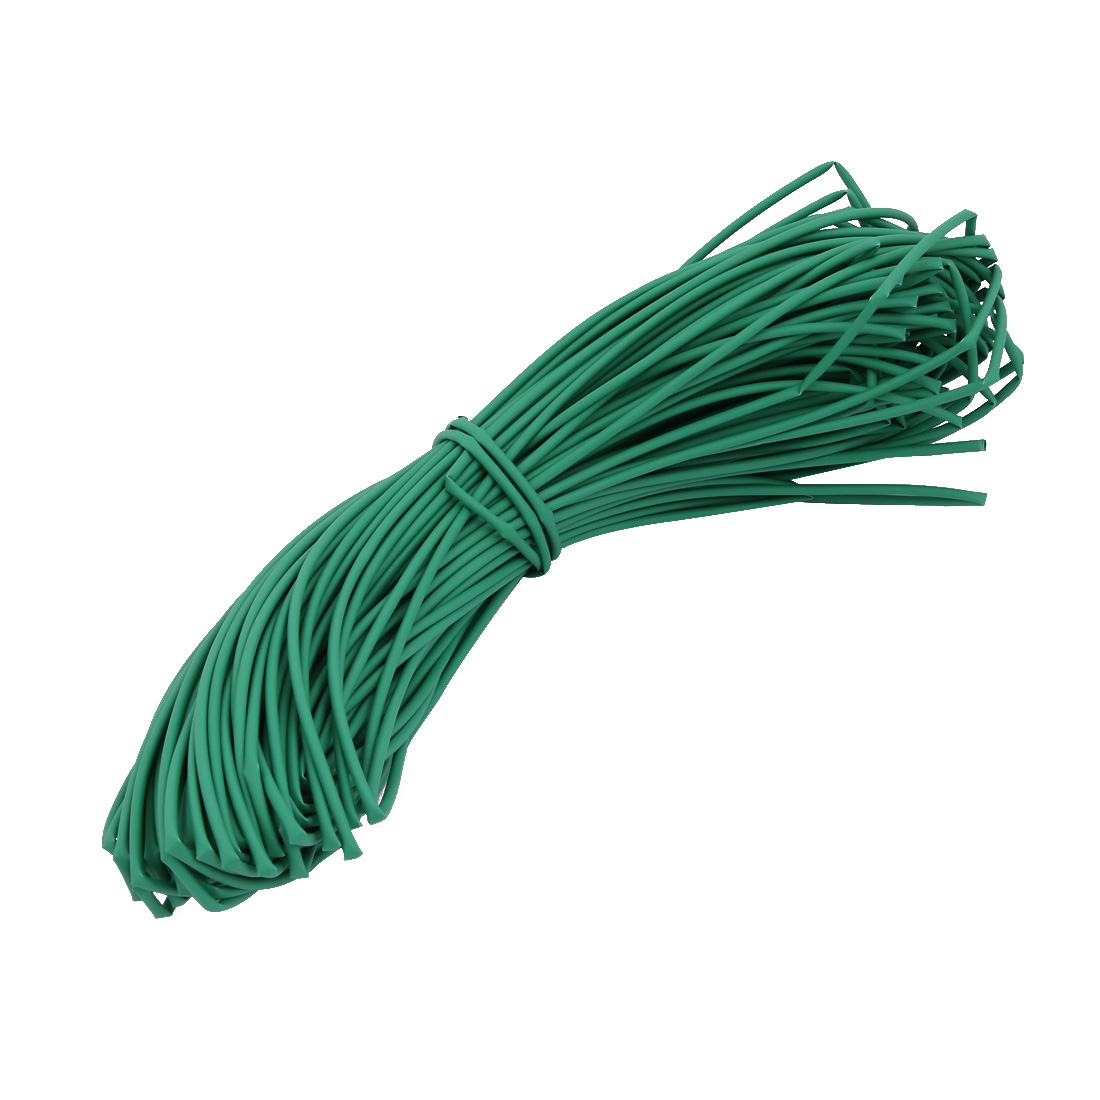 35M 0.06in Inner Dia Polyolefin Flame Retardant Tube Green for Wire Repairing